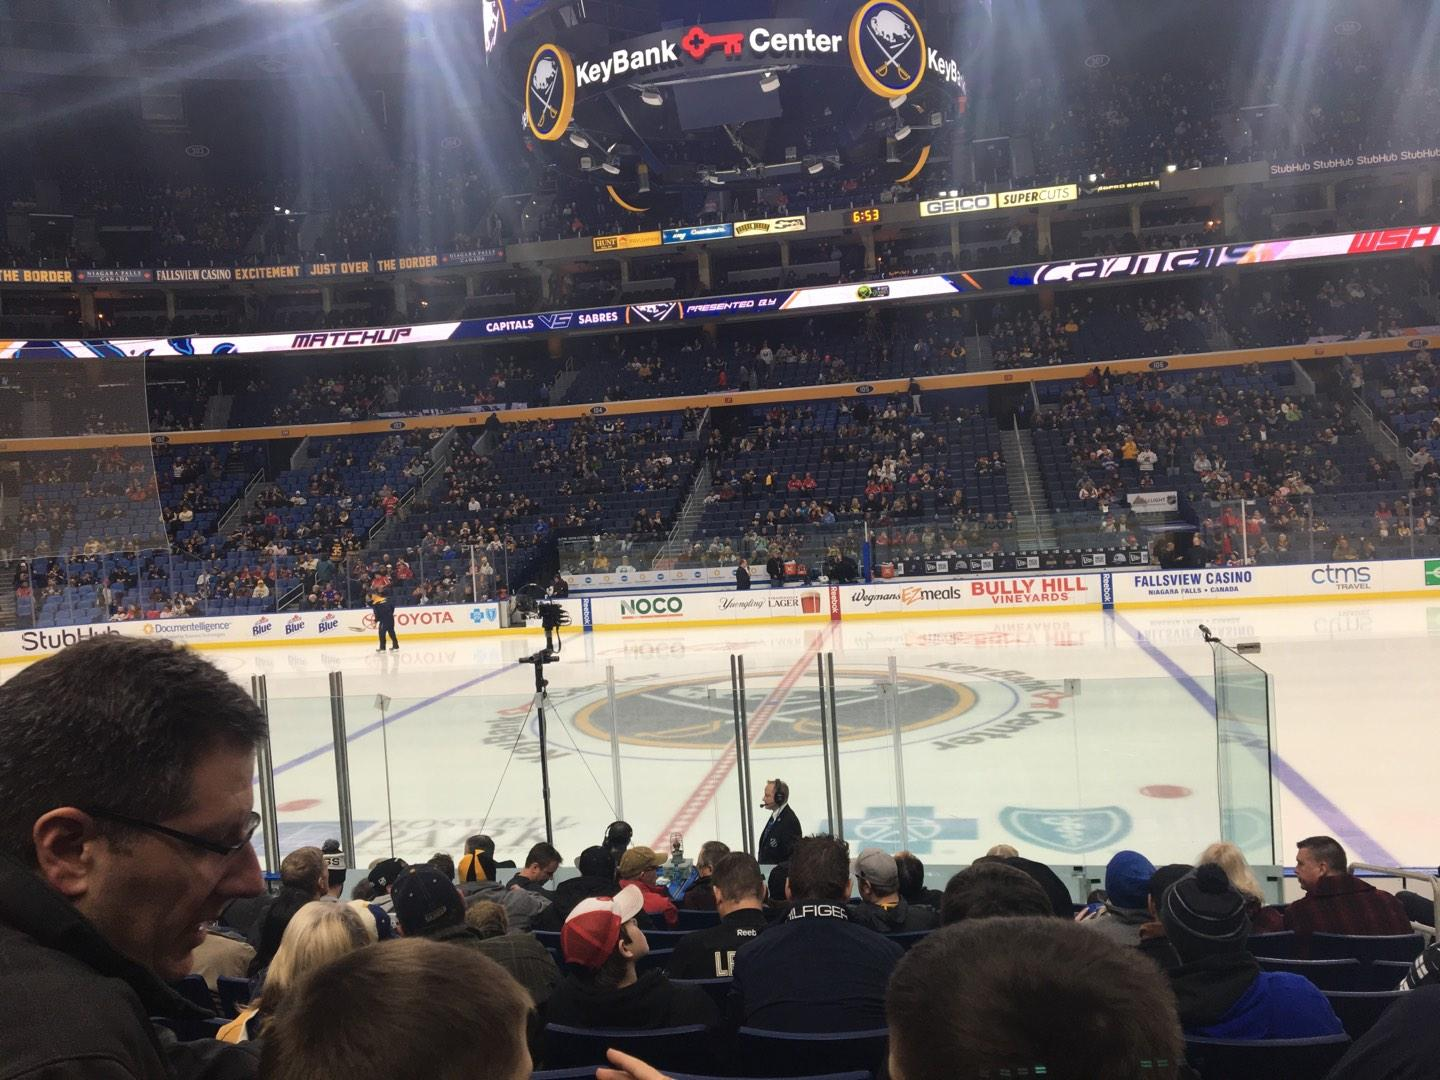 KeyBank Center Section 117 Row 12 Seat 4